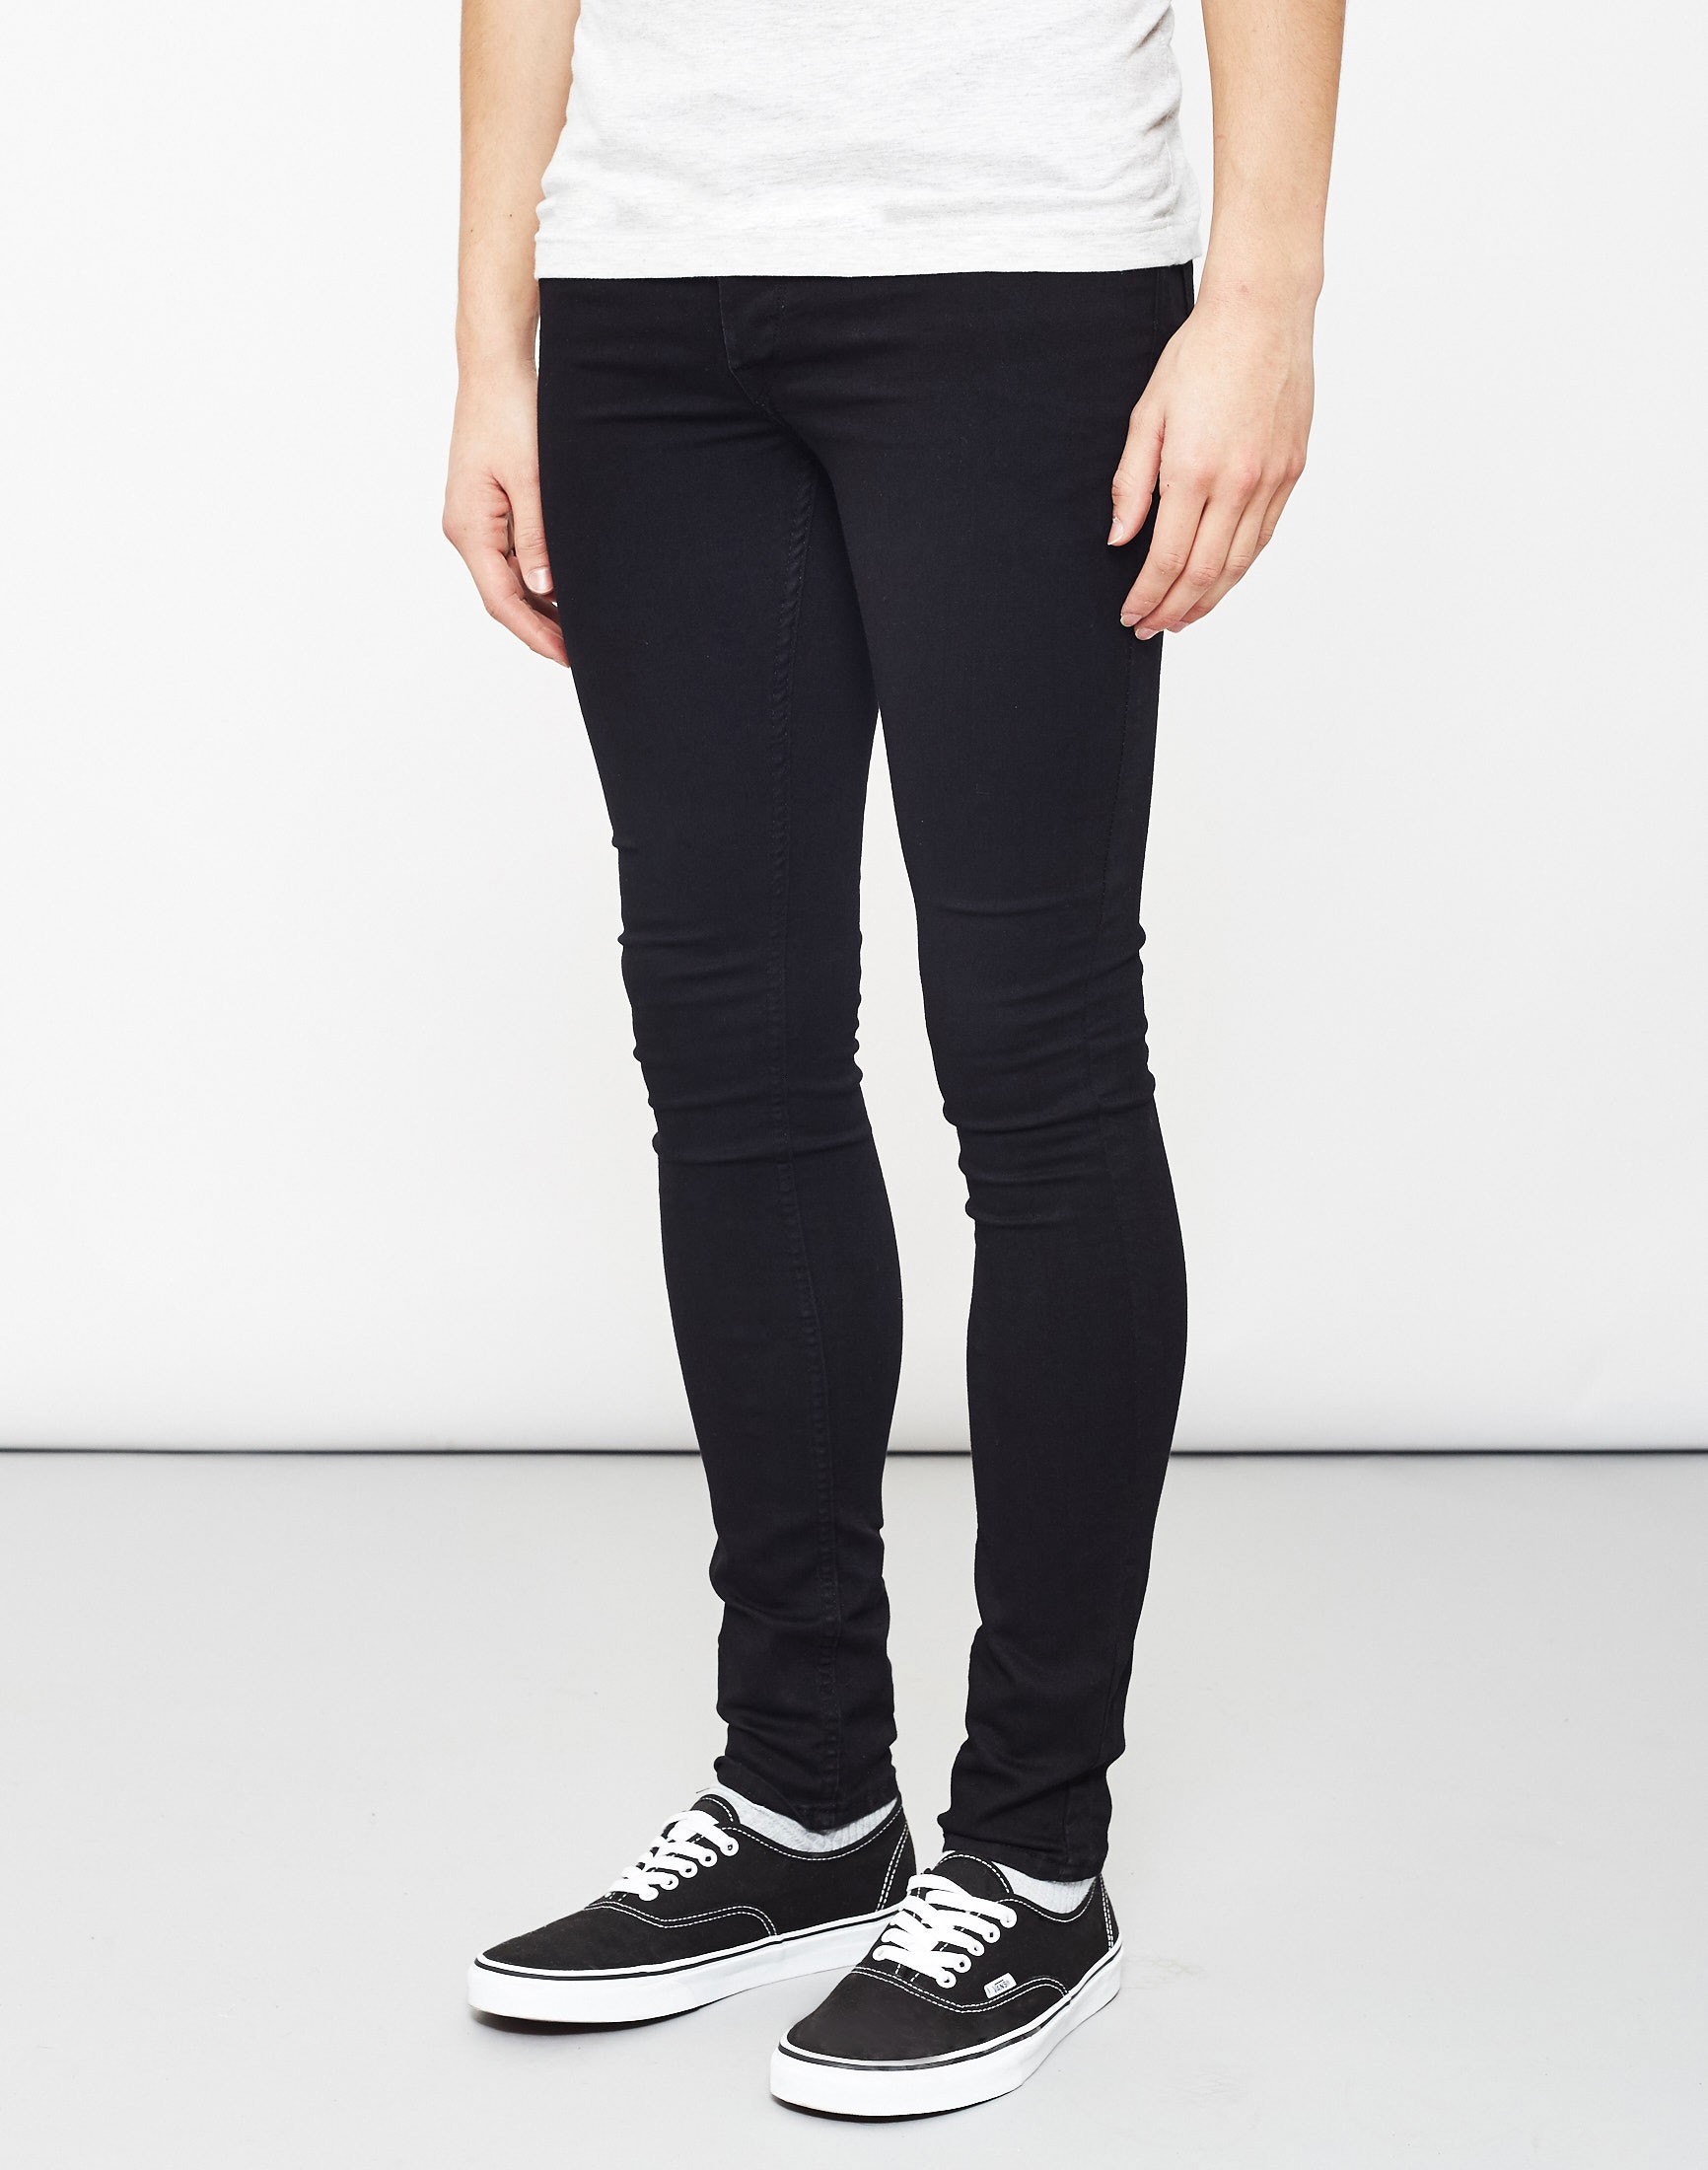 skinny jeans for men the idle man super skinny jeans black mens OAQPURJ